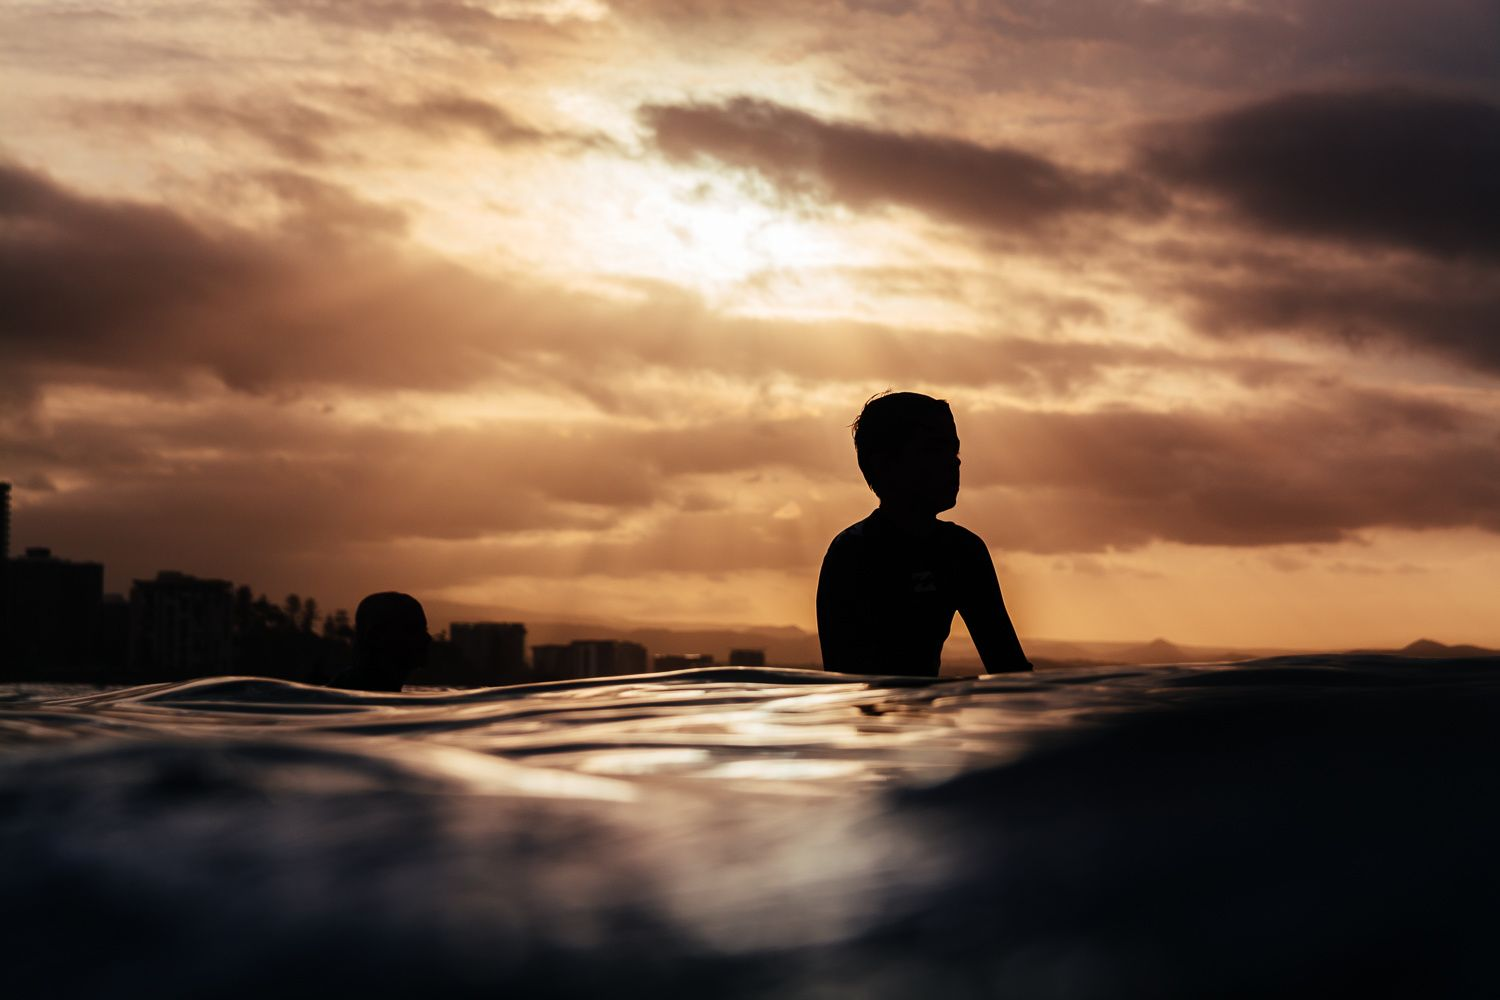 Kalle Lundholm Photography - NO ADDED LIGHT - COLOUR TO THE PEOPLE vsco, travel, australia, queensland, ocean, water, surf, sport, lifestyle, sunset, water, color, outex